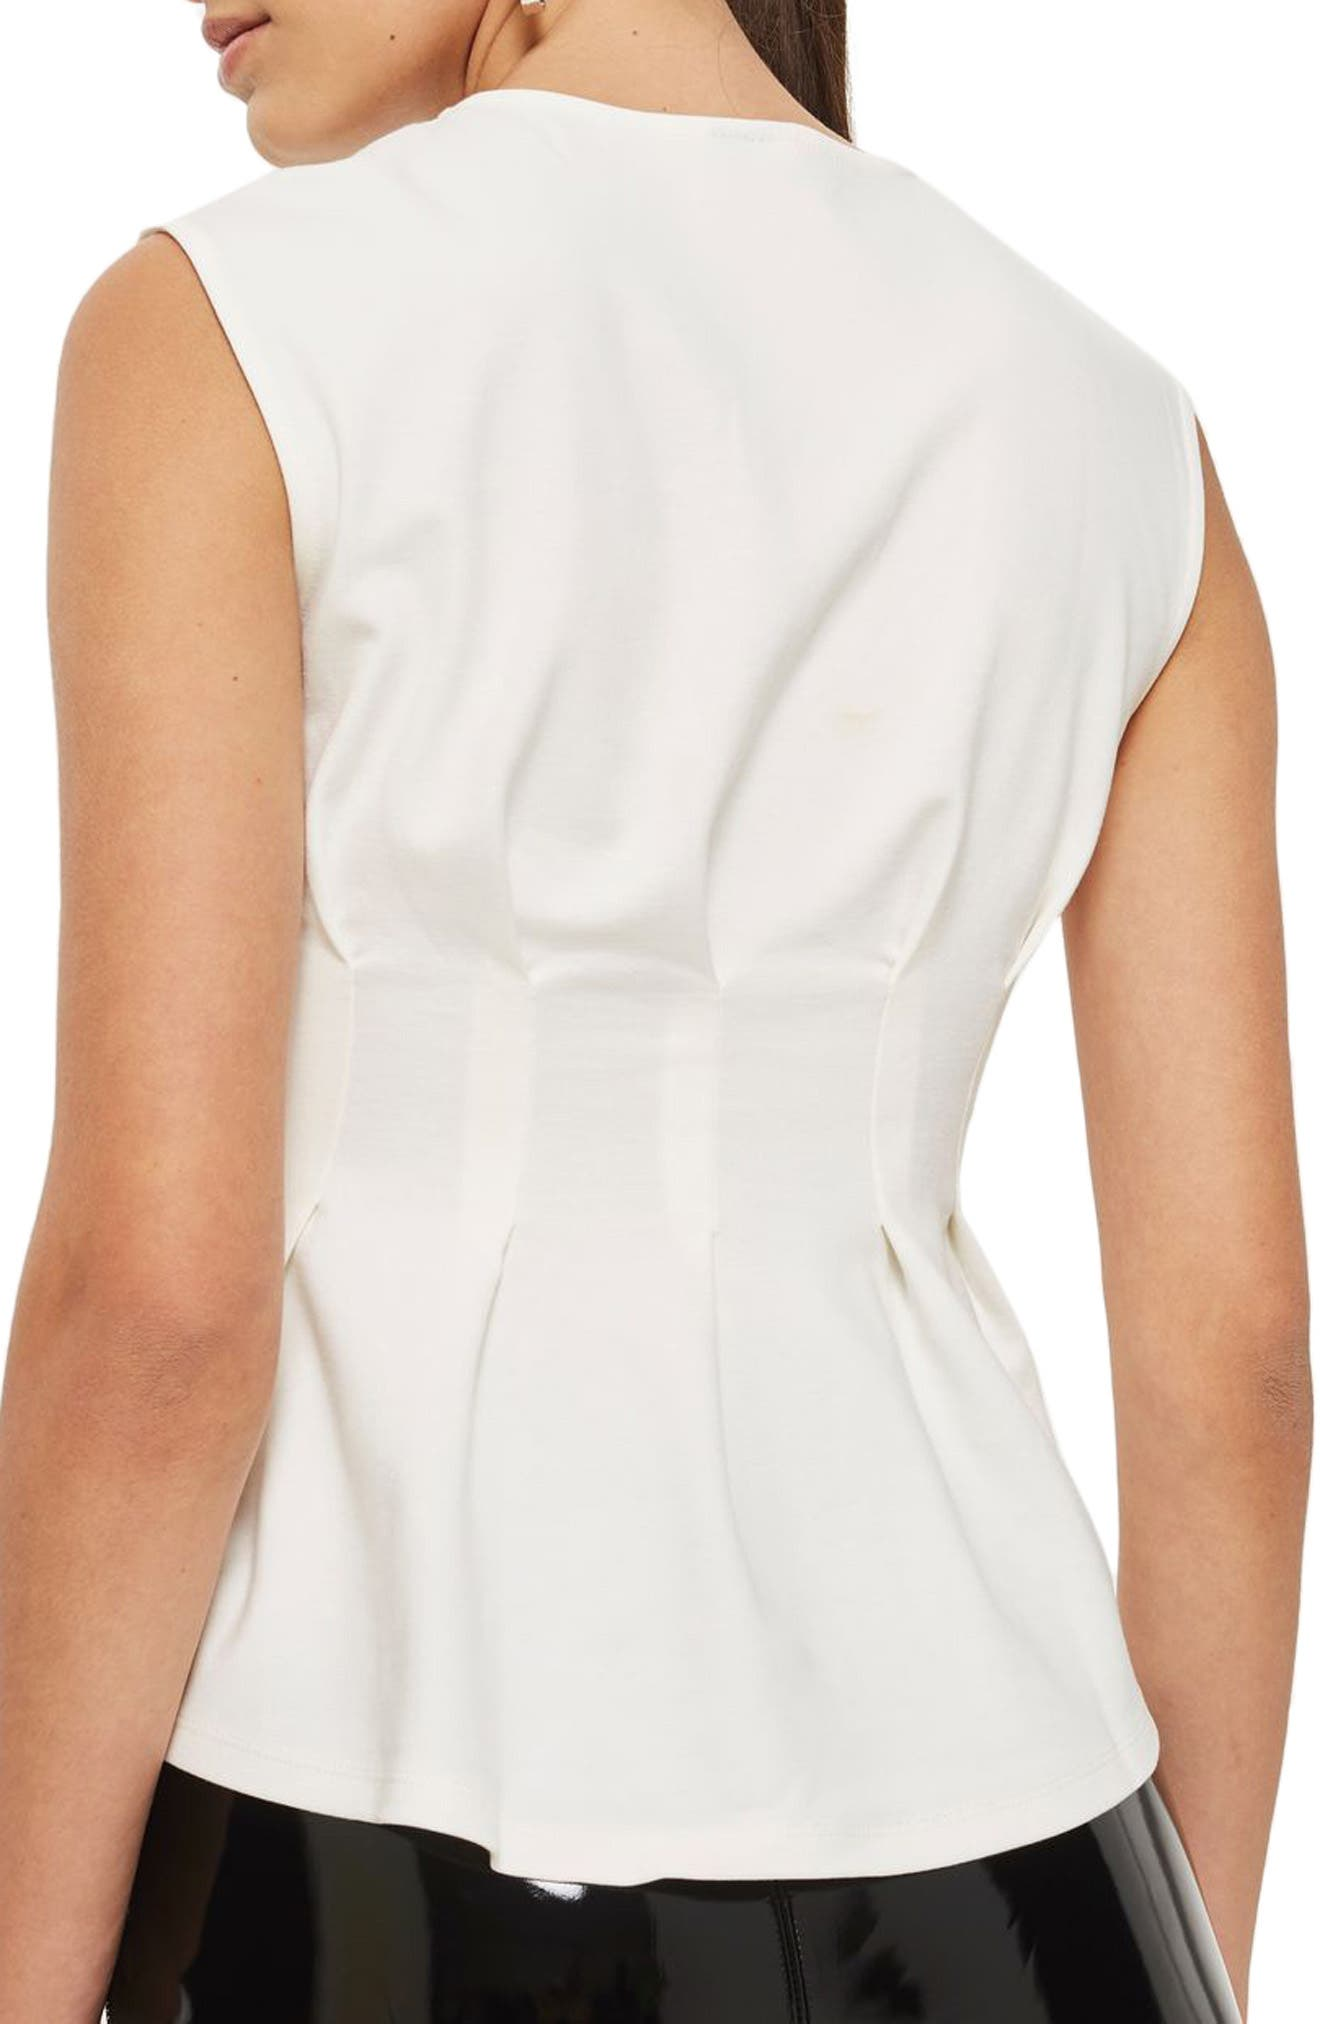 Cinched Waist Sleeveless Blouse,                             Alternate thumbnail 2, color,                             900